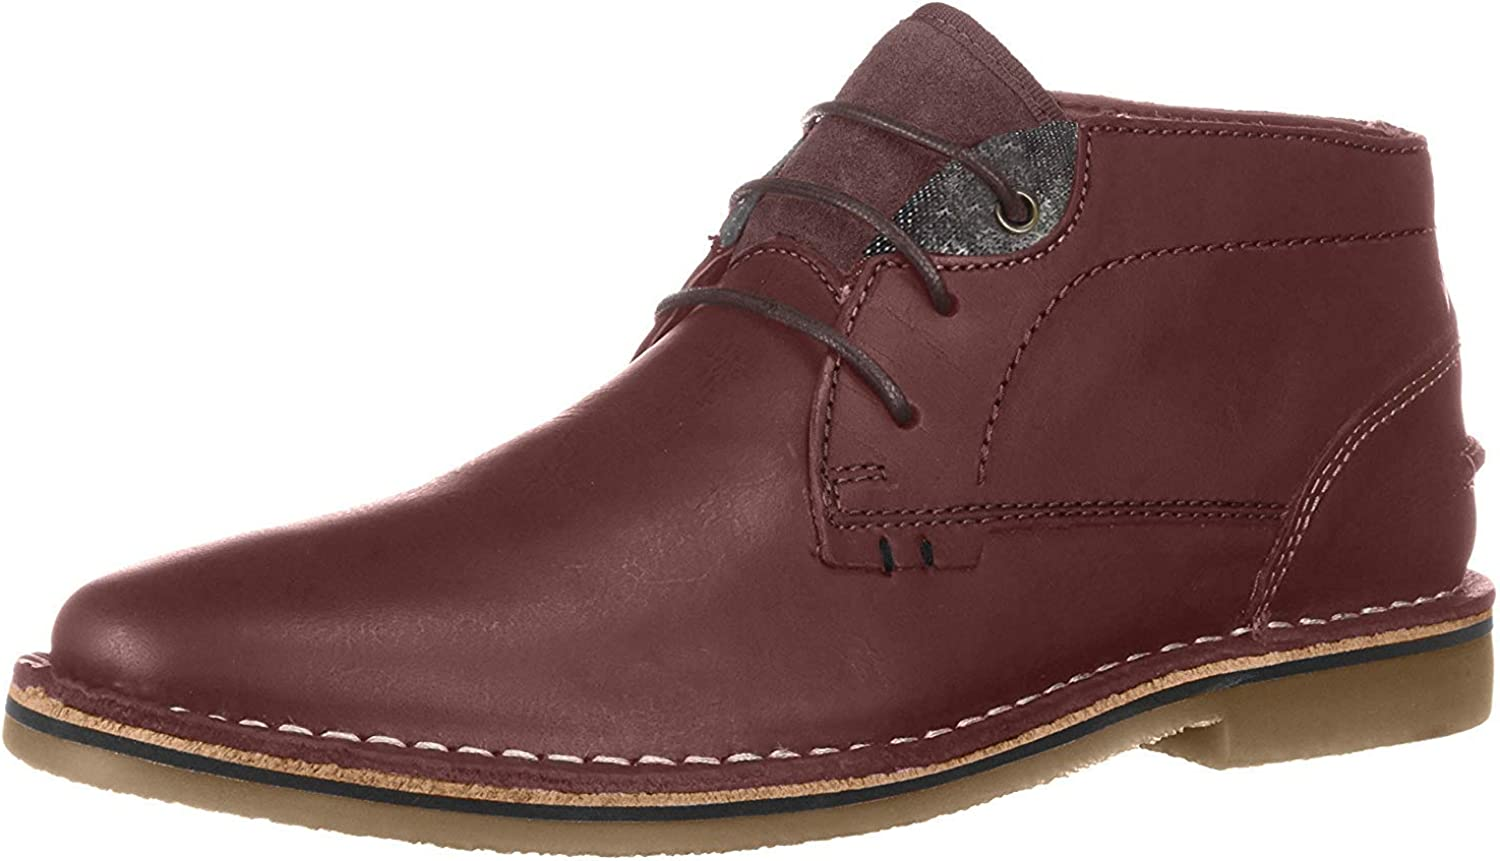 Steve Madden Men's Hinton Chukka Free shipping Boot Sale Special Price